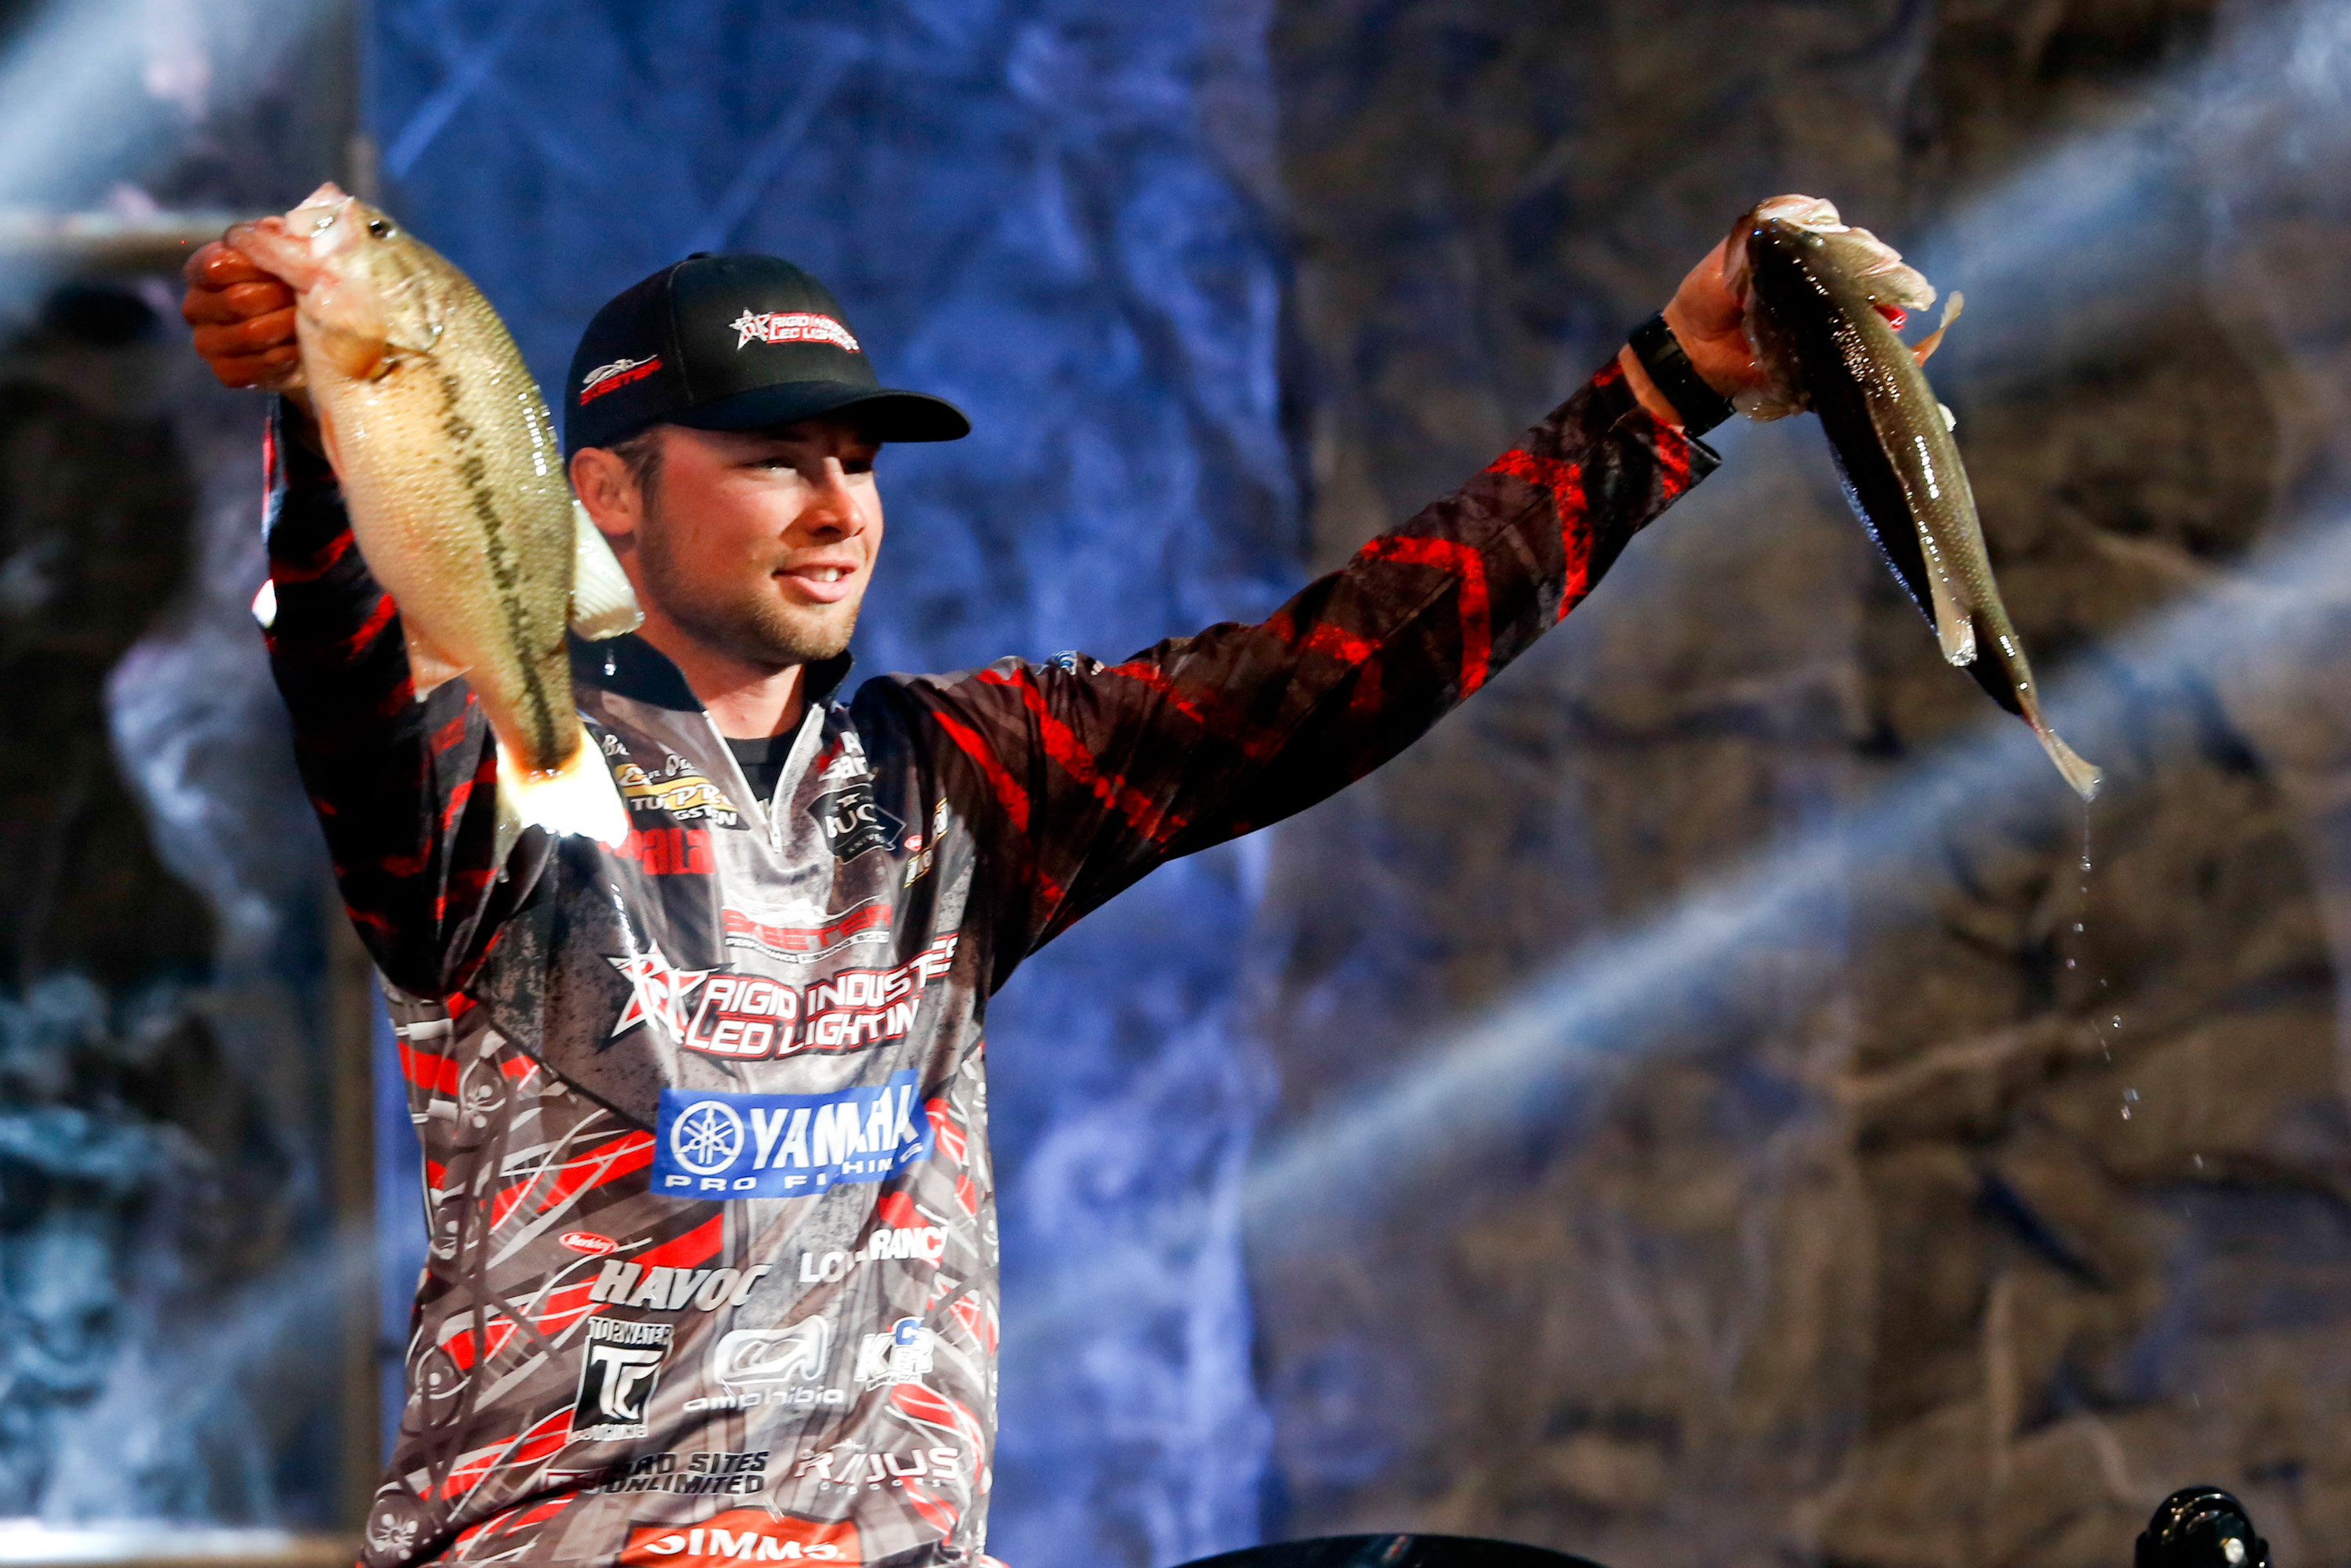 Although the Brandon Palaniuk controversy follows him everywhere, this top angler is making big plans for redemption in 2014.